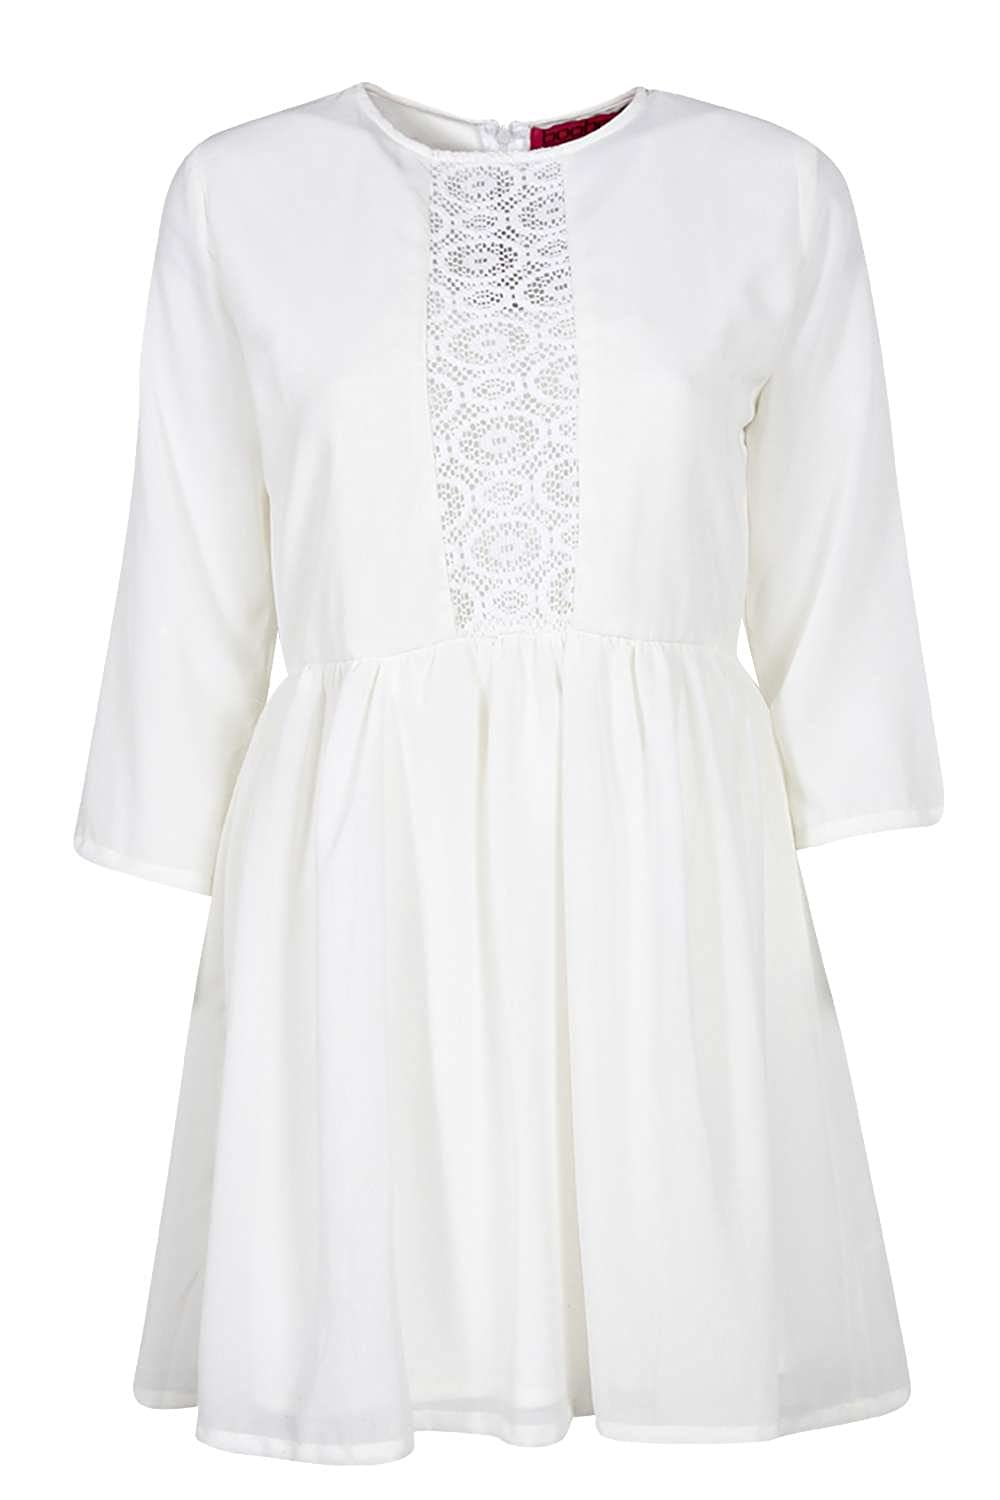 81c17f67e5c4a Womens Albany Lace Insert Woven Smock Dress - Cream - 12: Amazon.co.uk:  Clothing